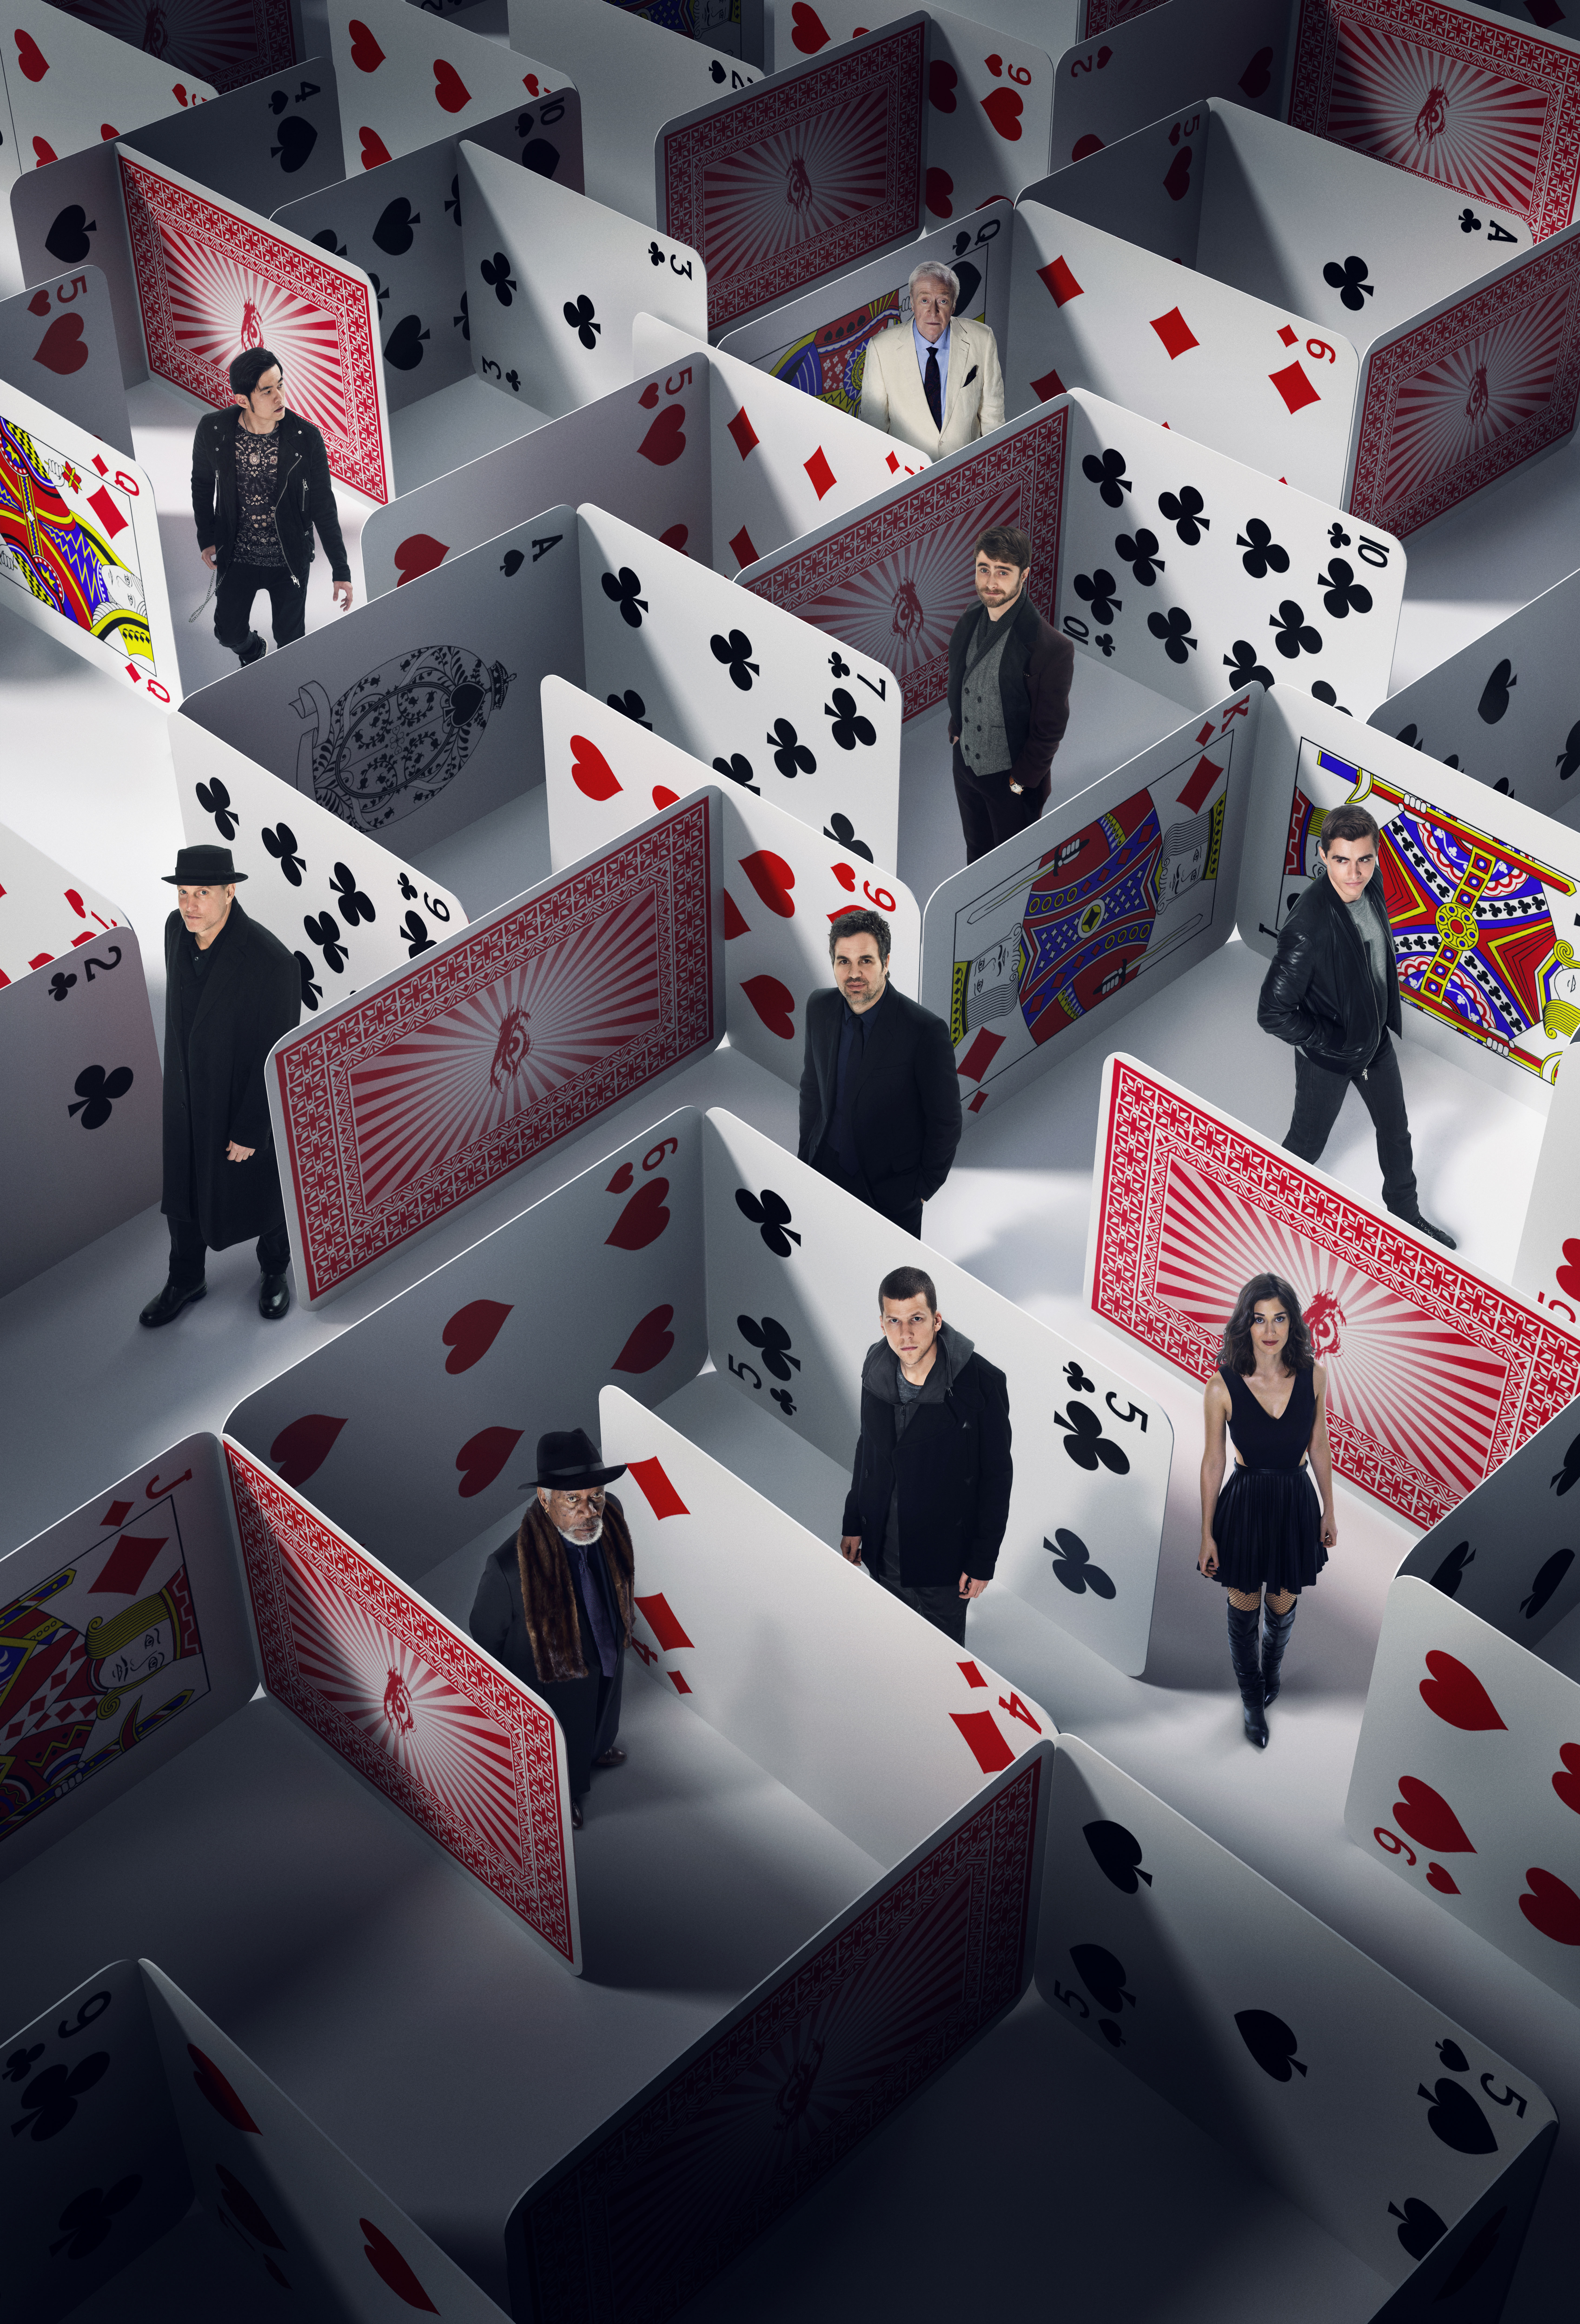 #now You See Me 2, #2016 Movies - Now You See Me 4k , HD Wallpaper & Backgrounds